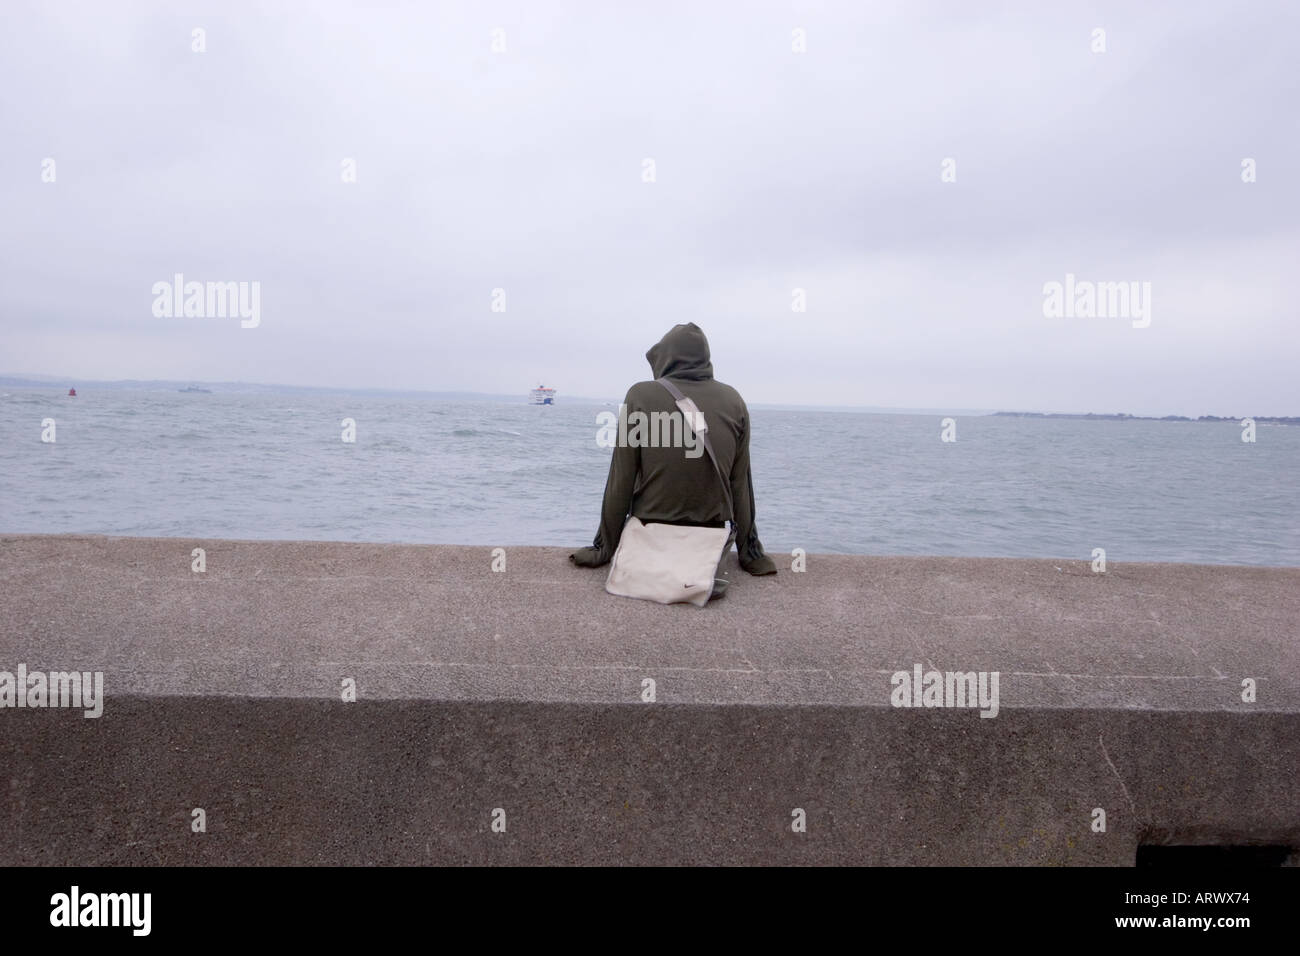 Lone man in hoody hooded top looking out to sea seated on concrete sea defences - Stock Image